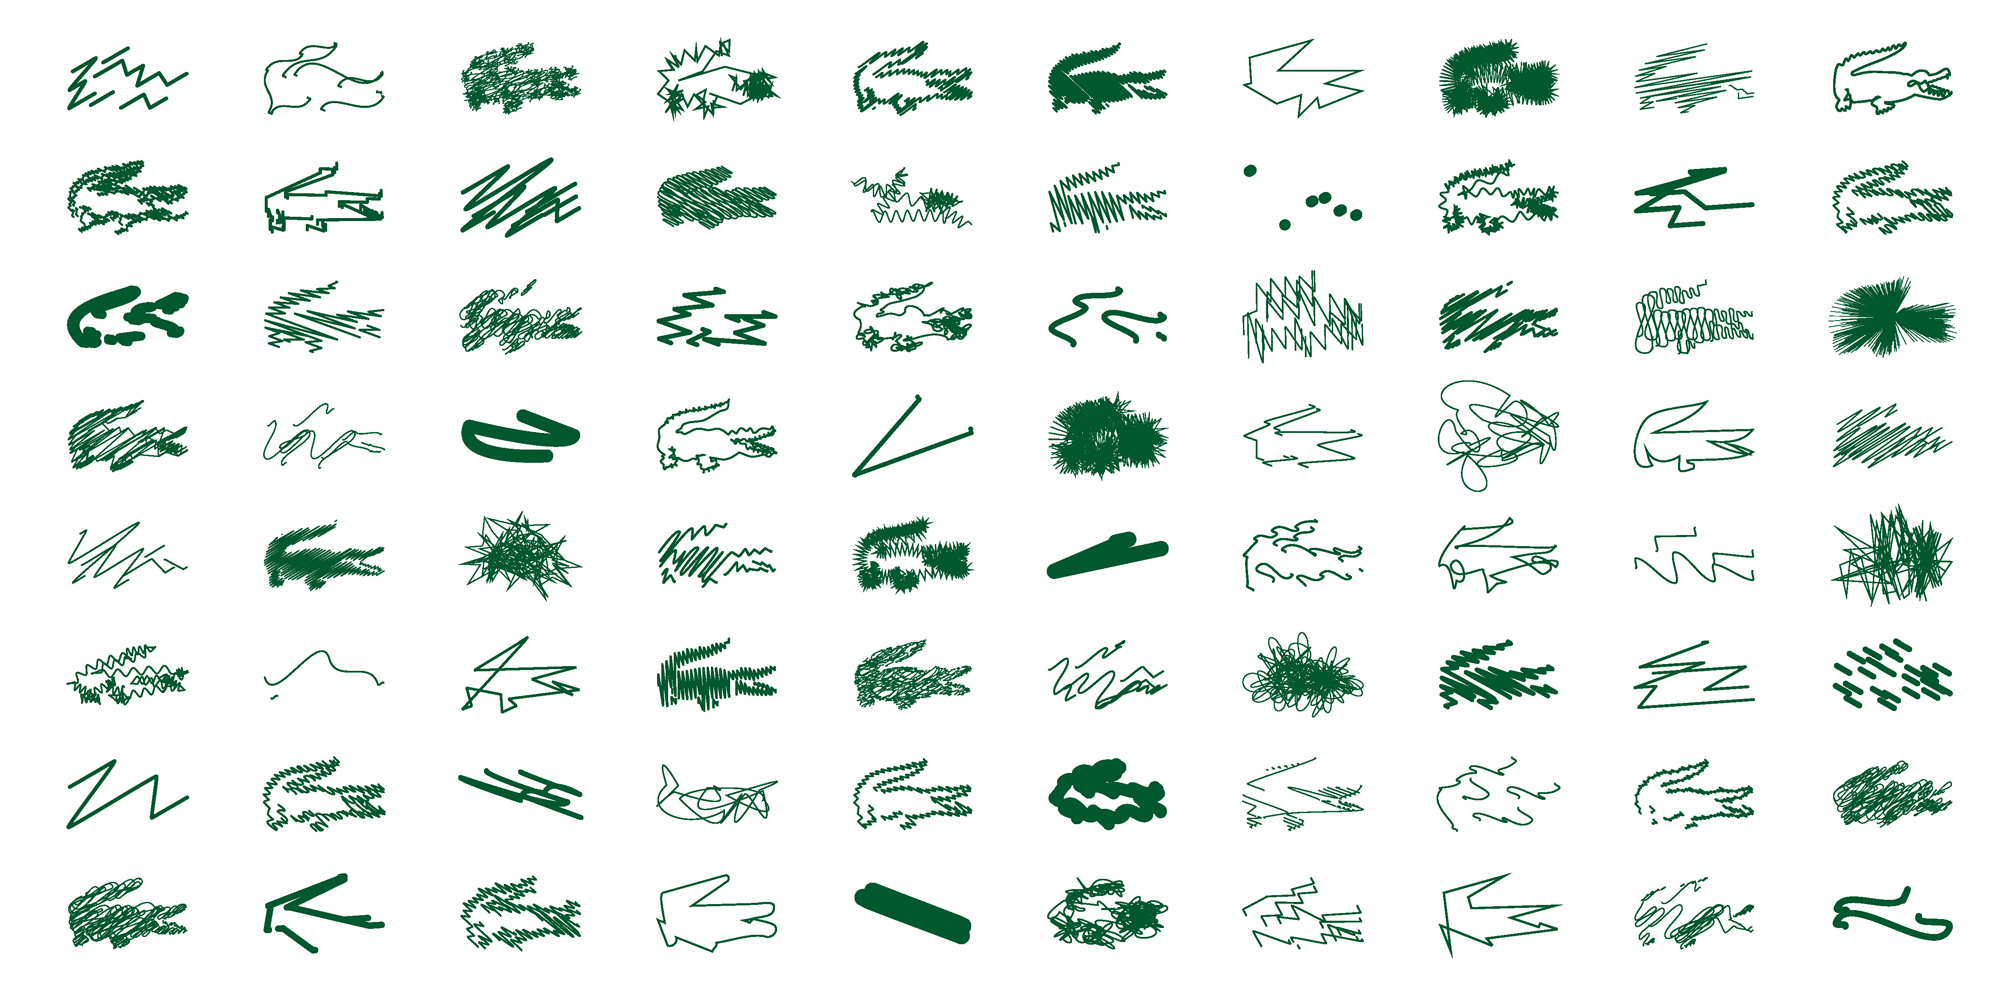 Lacoste-Peter-Saville-variations